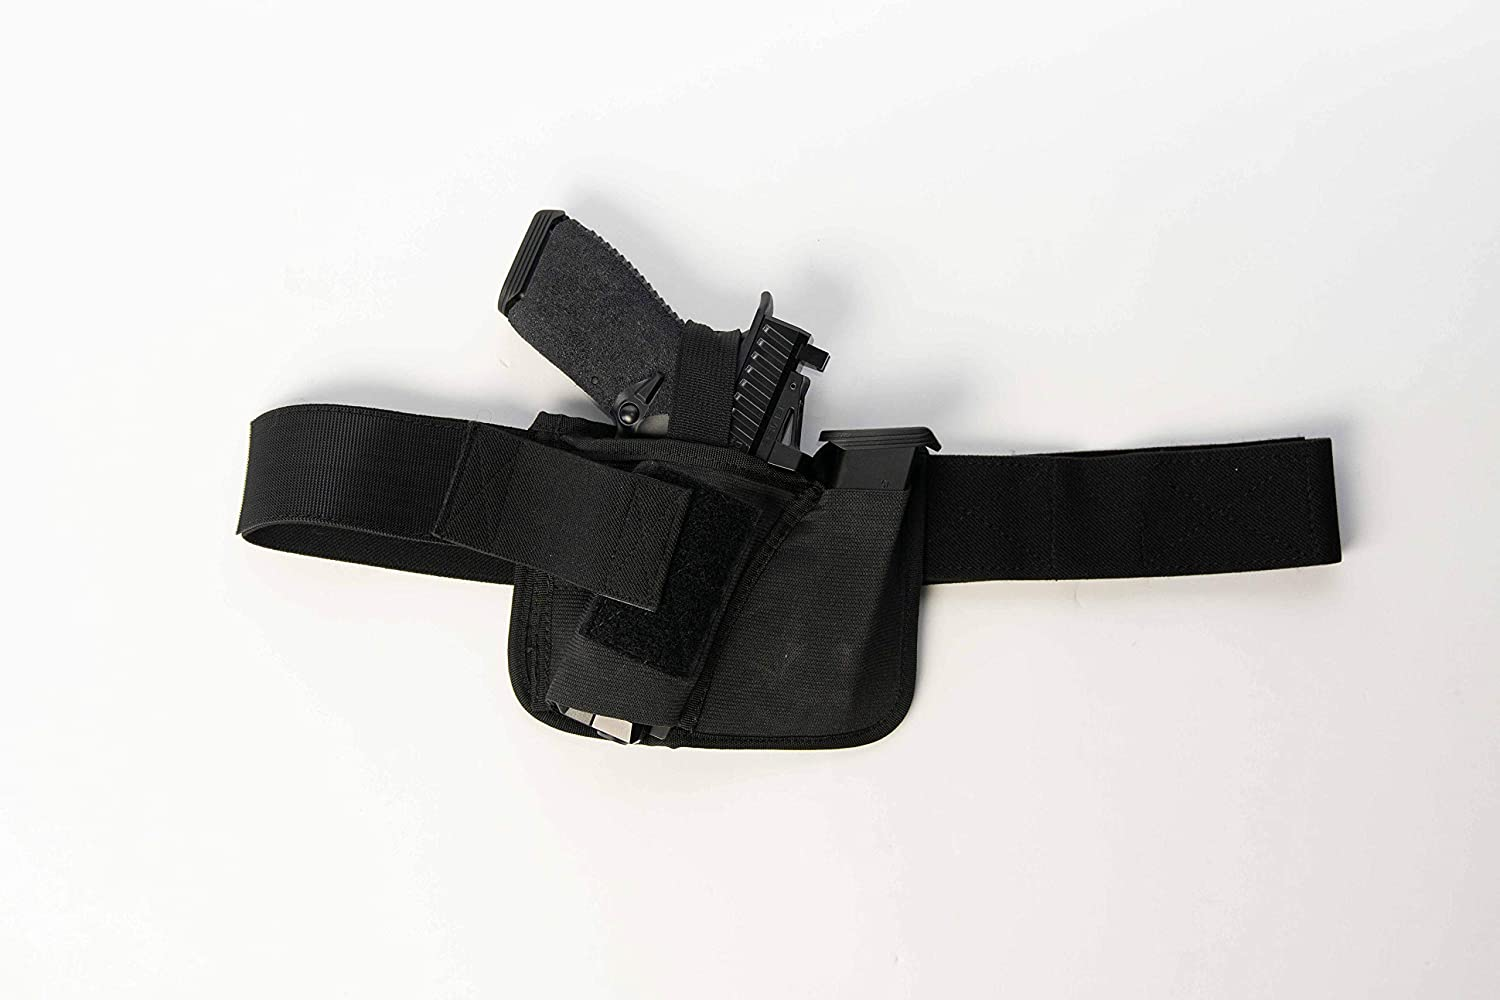 Max 83% OFF Brave Response VORN IWB Concealed Single Mag Holster Pouch San Francisco Mall Carry